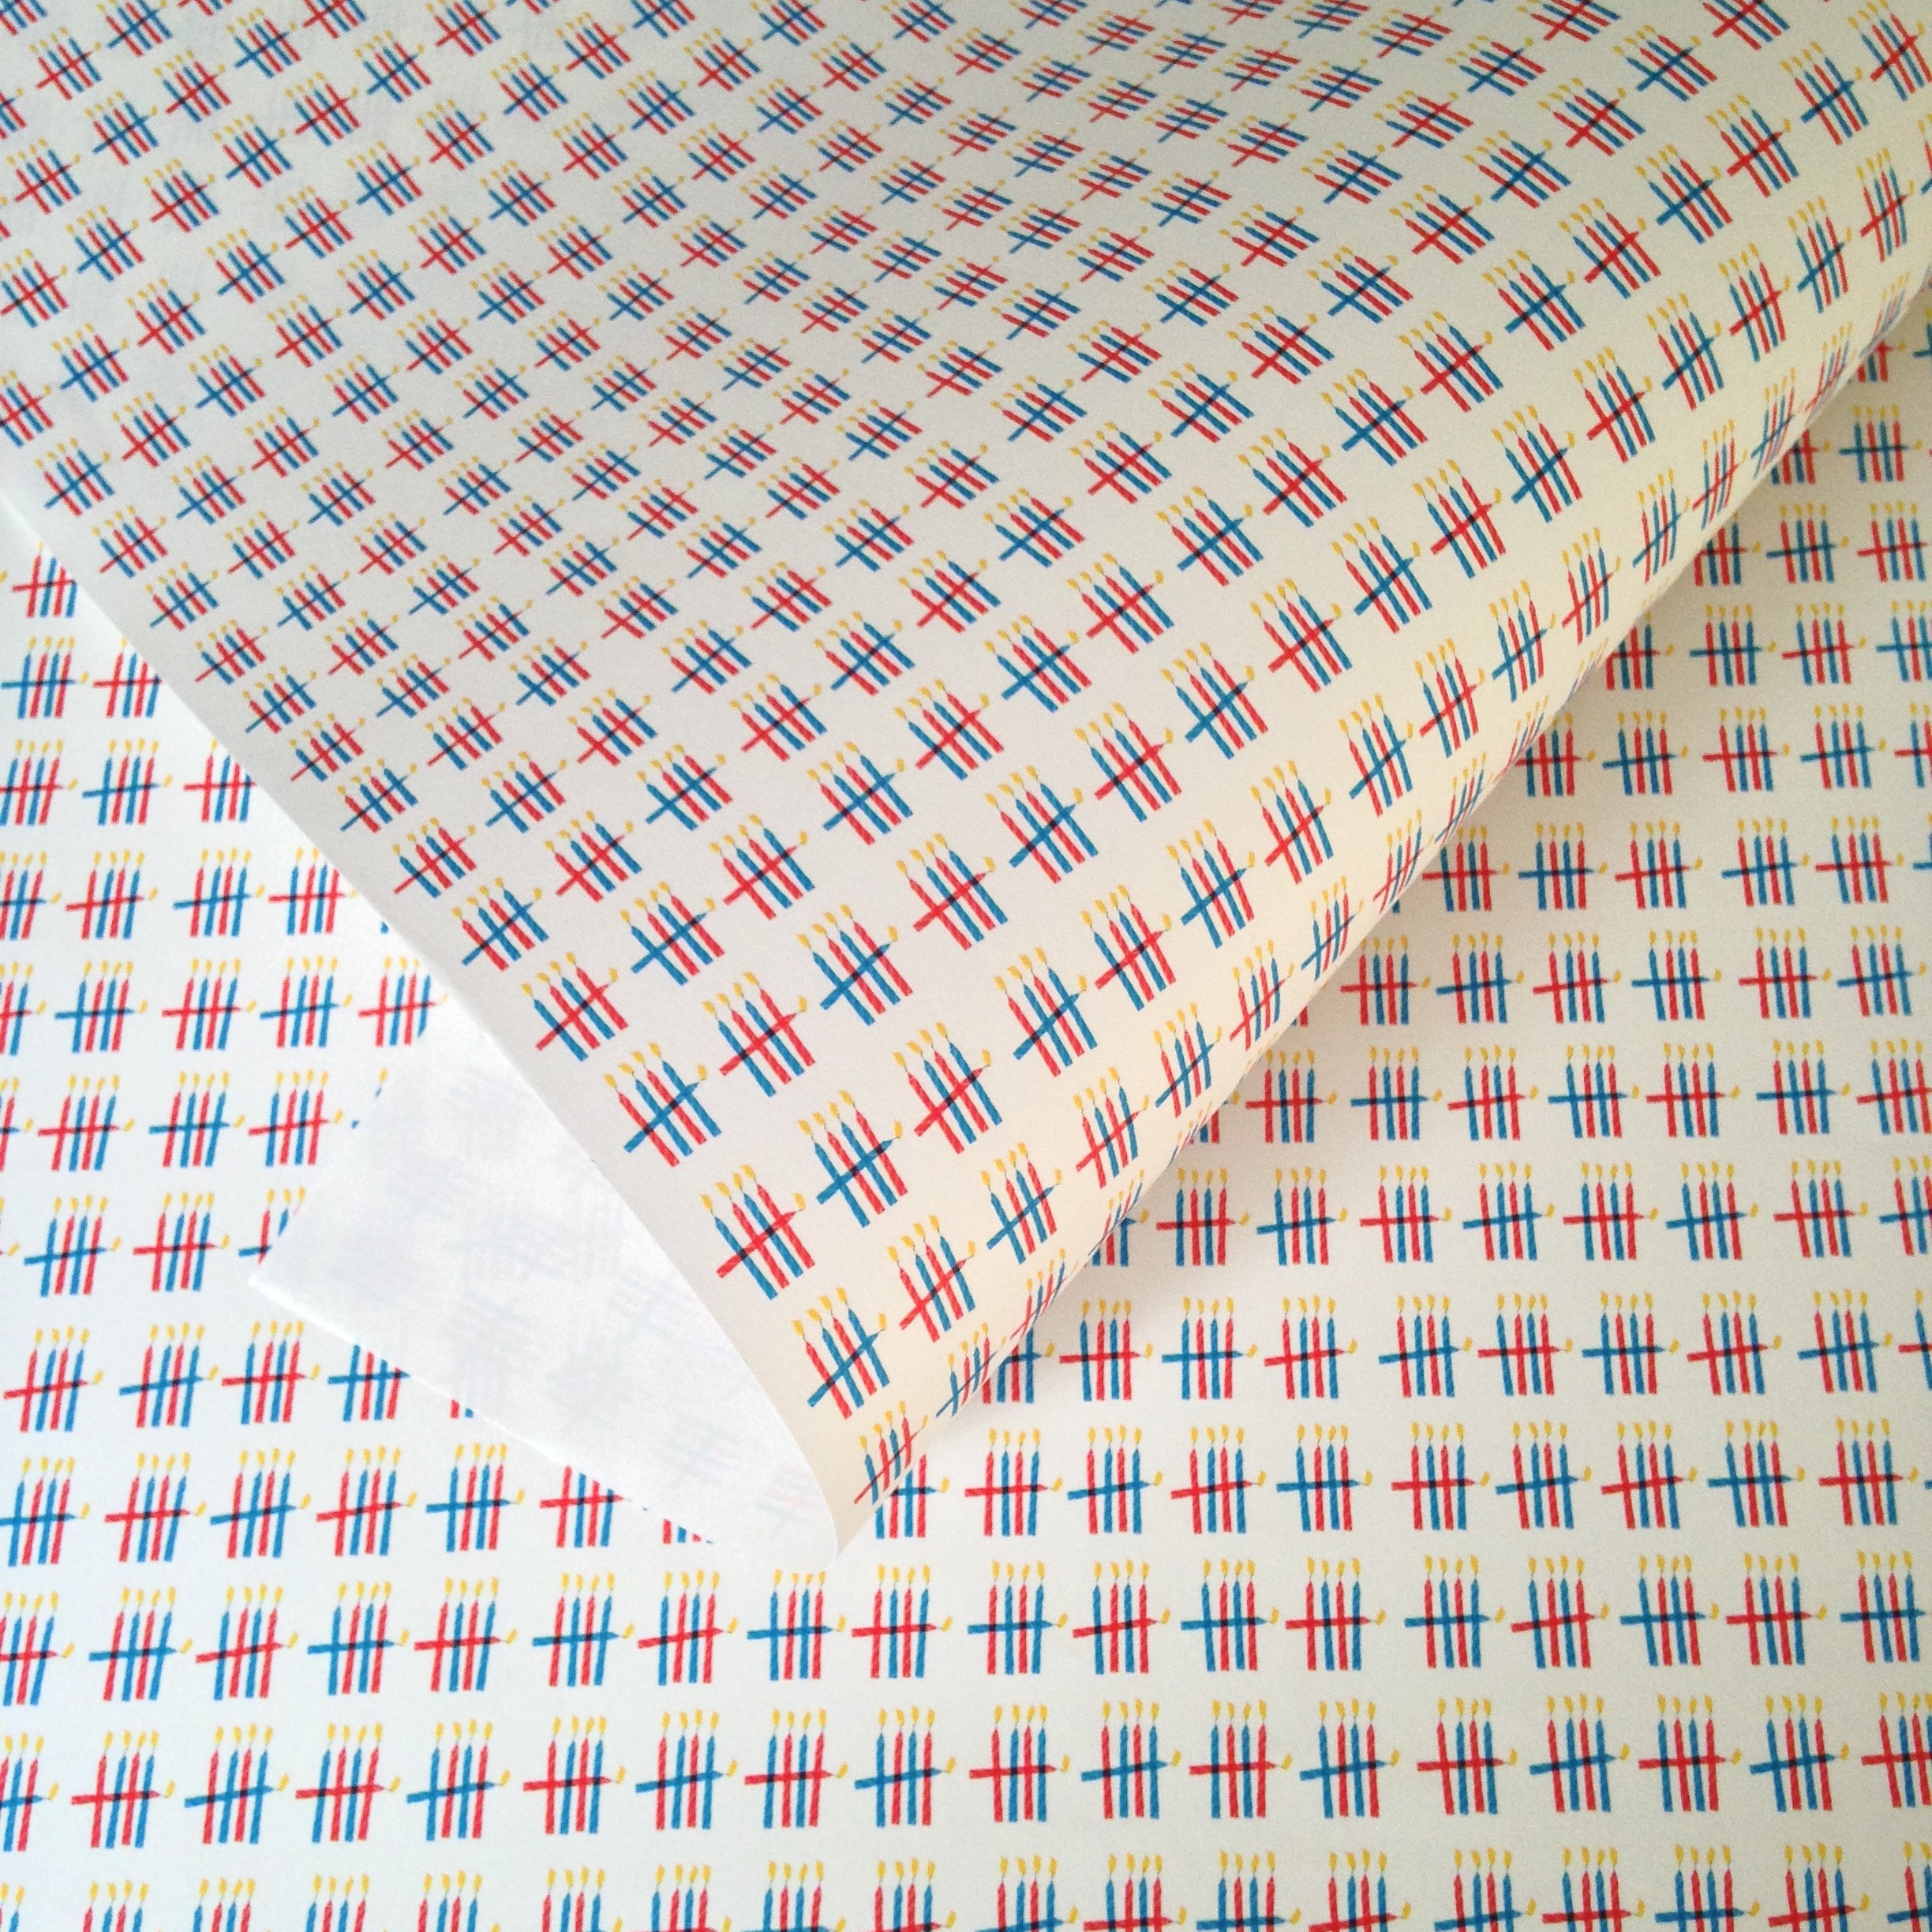 Birthday wrapping paper, counting candles: WP_NWC_02